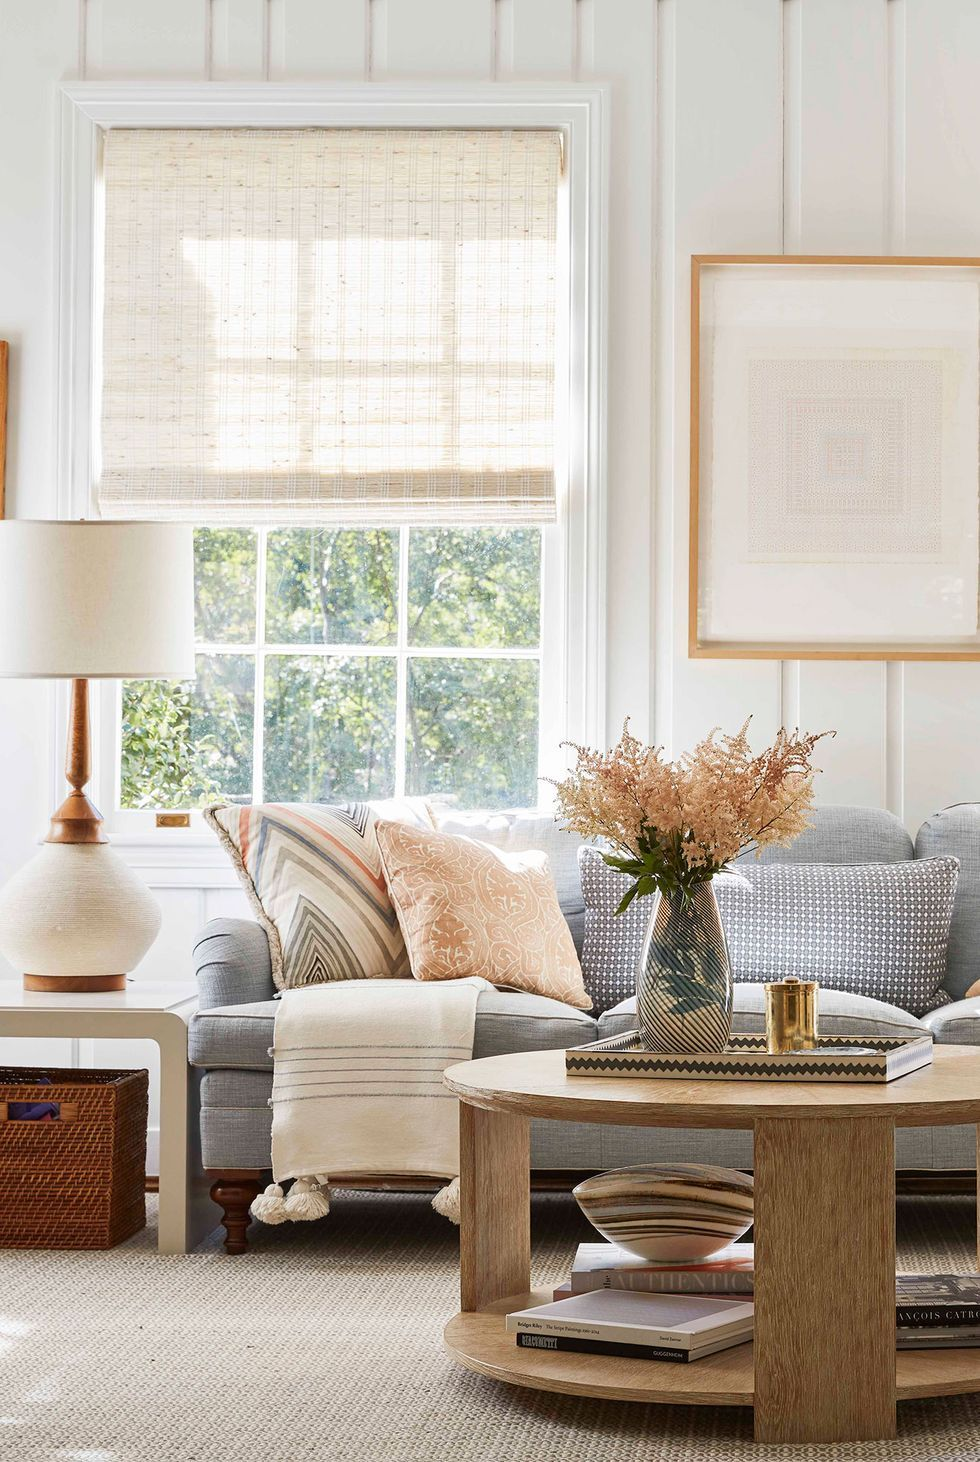 Small front room ideas – the way to adorn a cosy and compact sitting room, snug or lounge